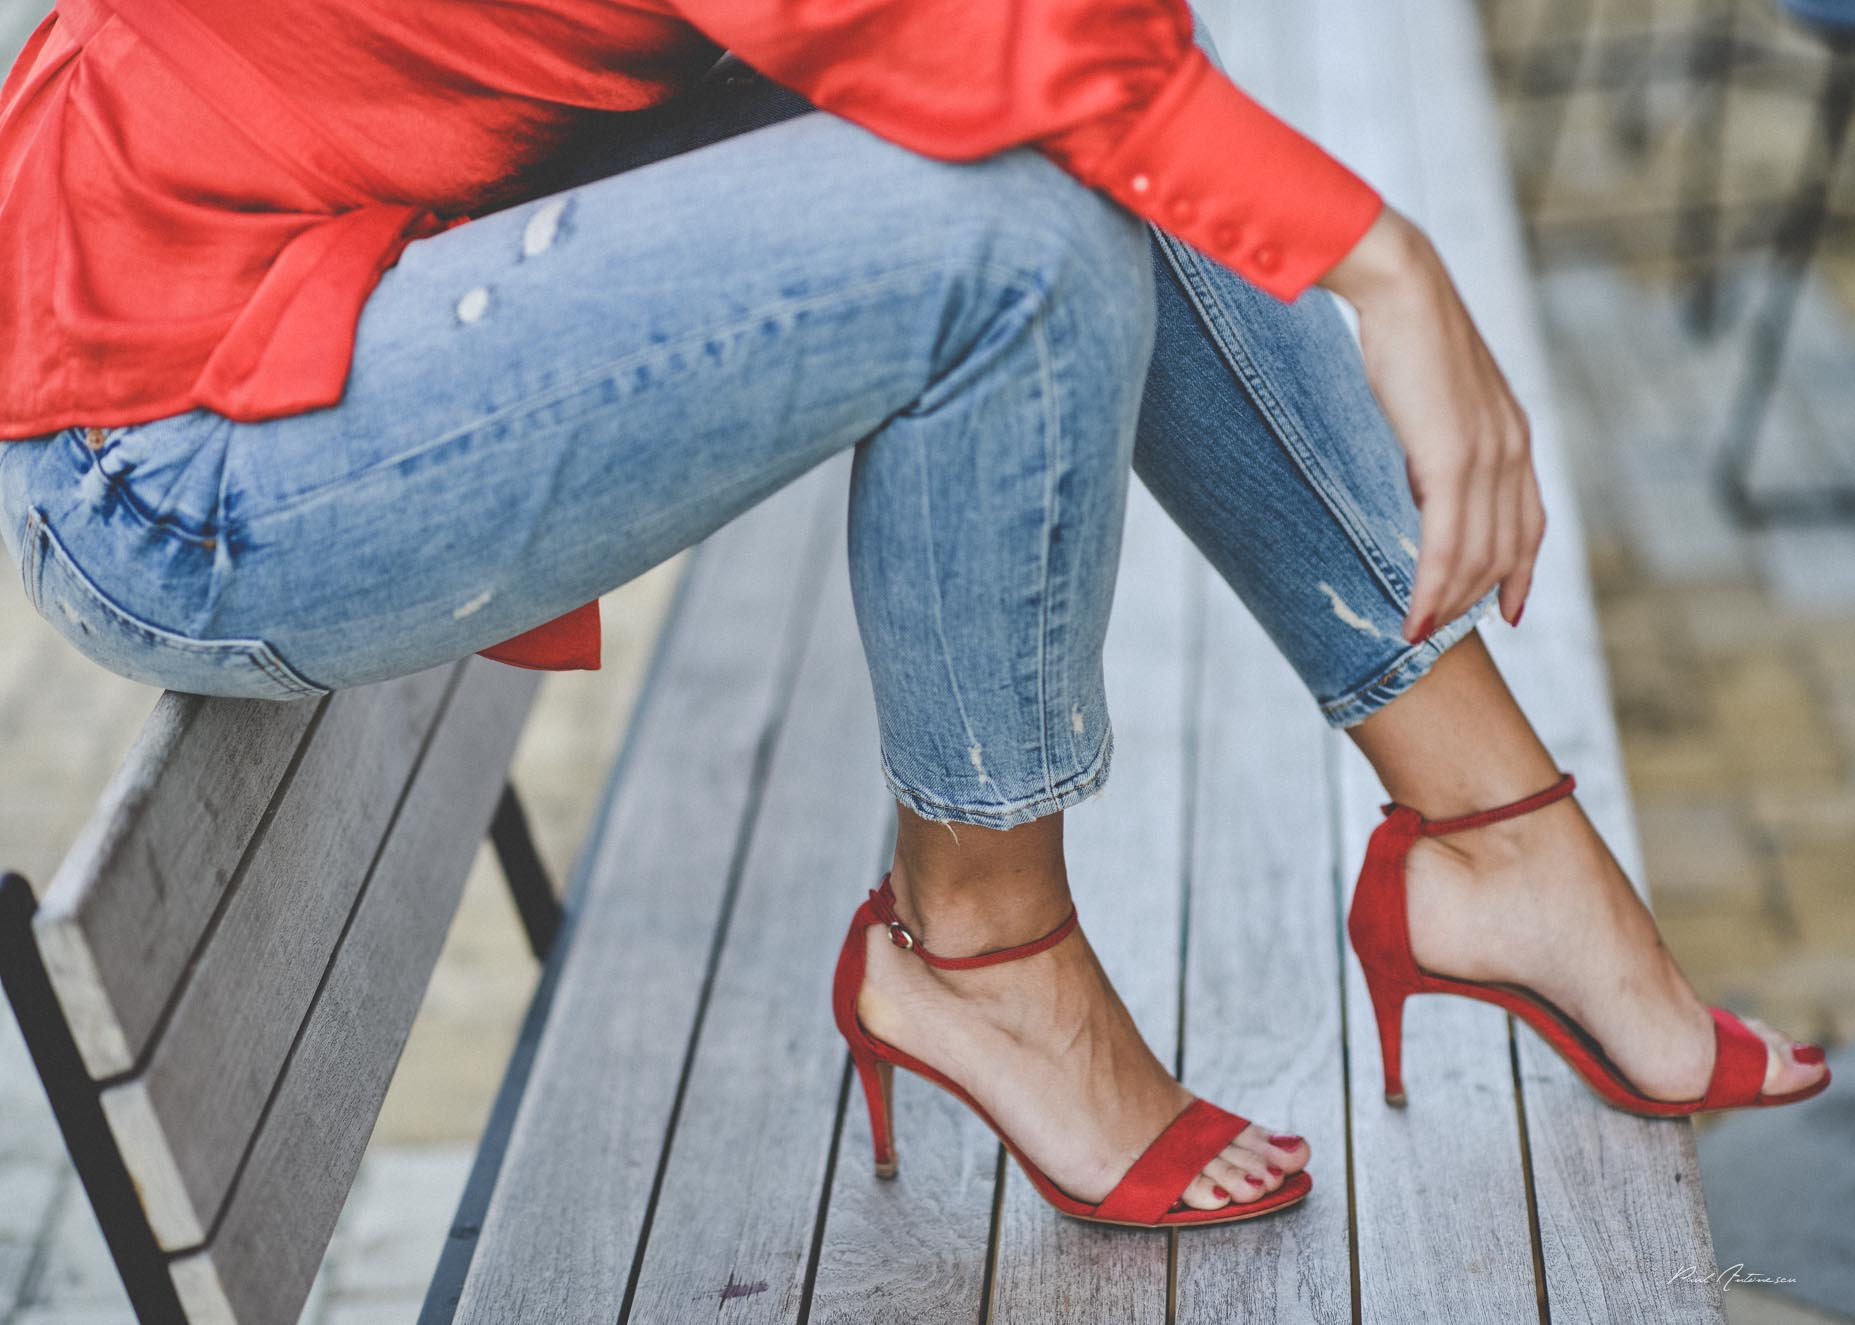 Details of a pretty blonde girl wearing blue jeans, red fancy shoes and a red top posing for the camera in the city.